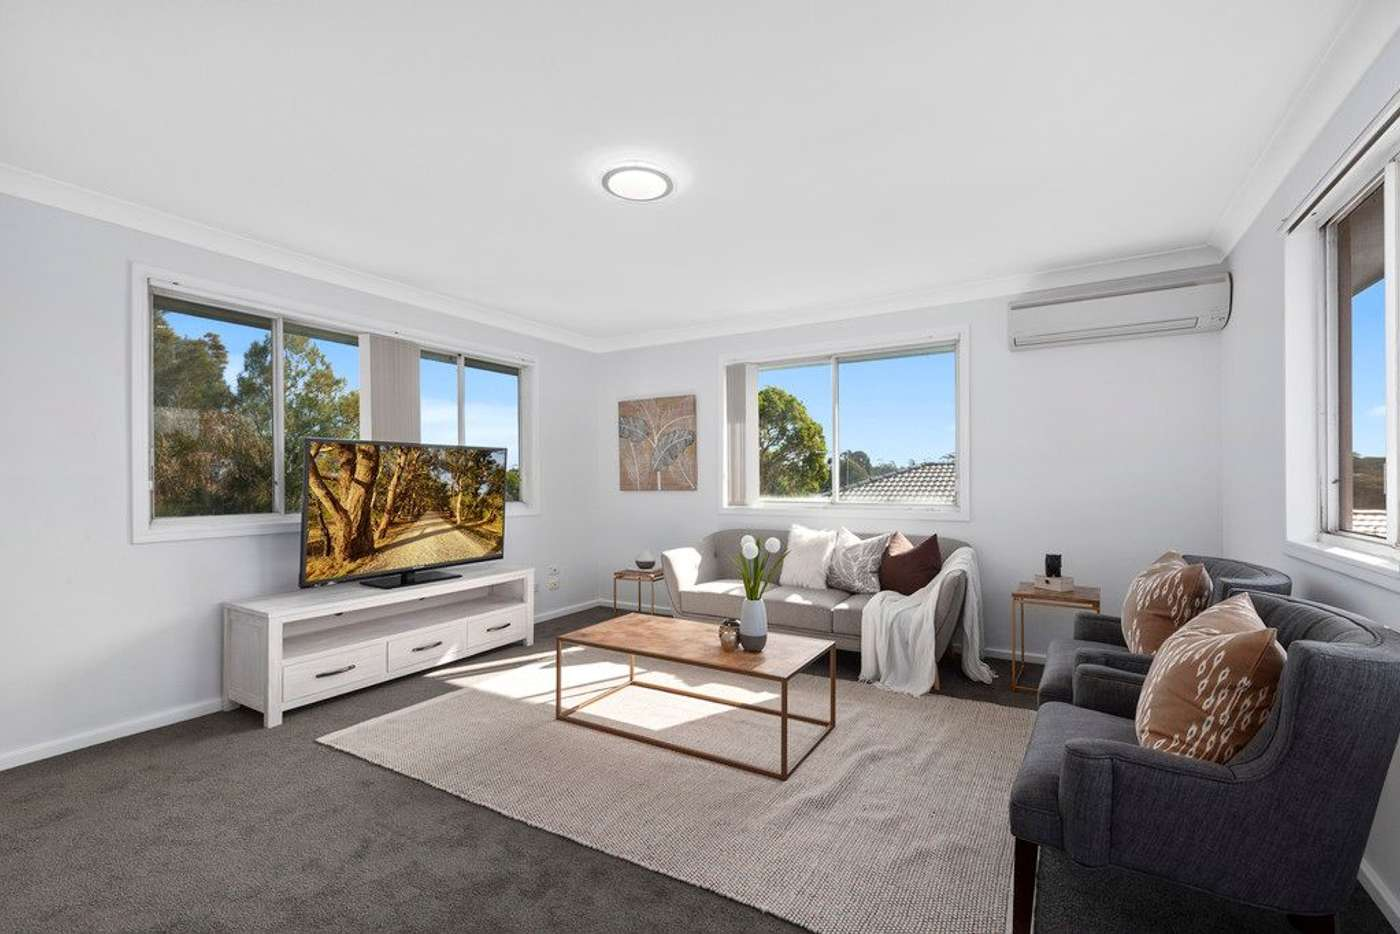 Sixth view of Homely house listing, 20 Michigan Avenue, Asquith NSW 2077